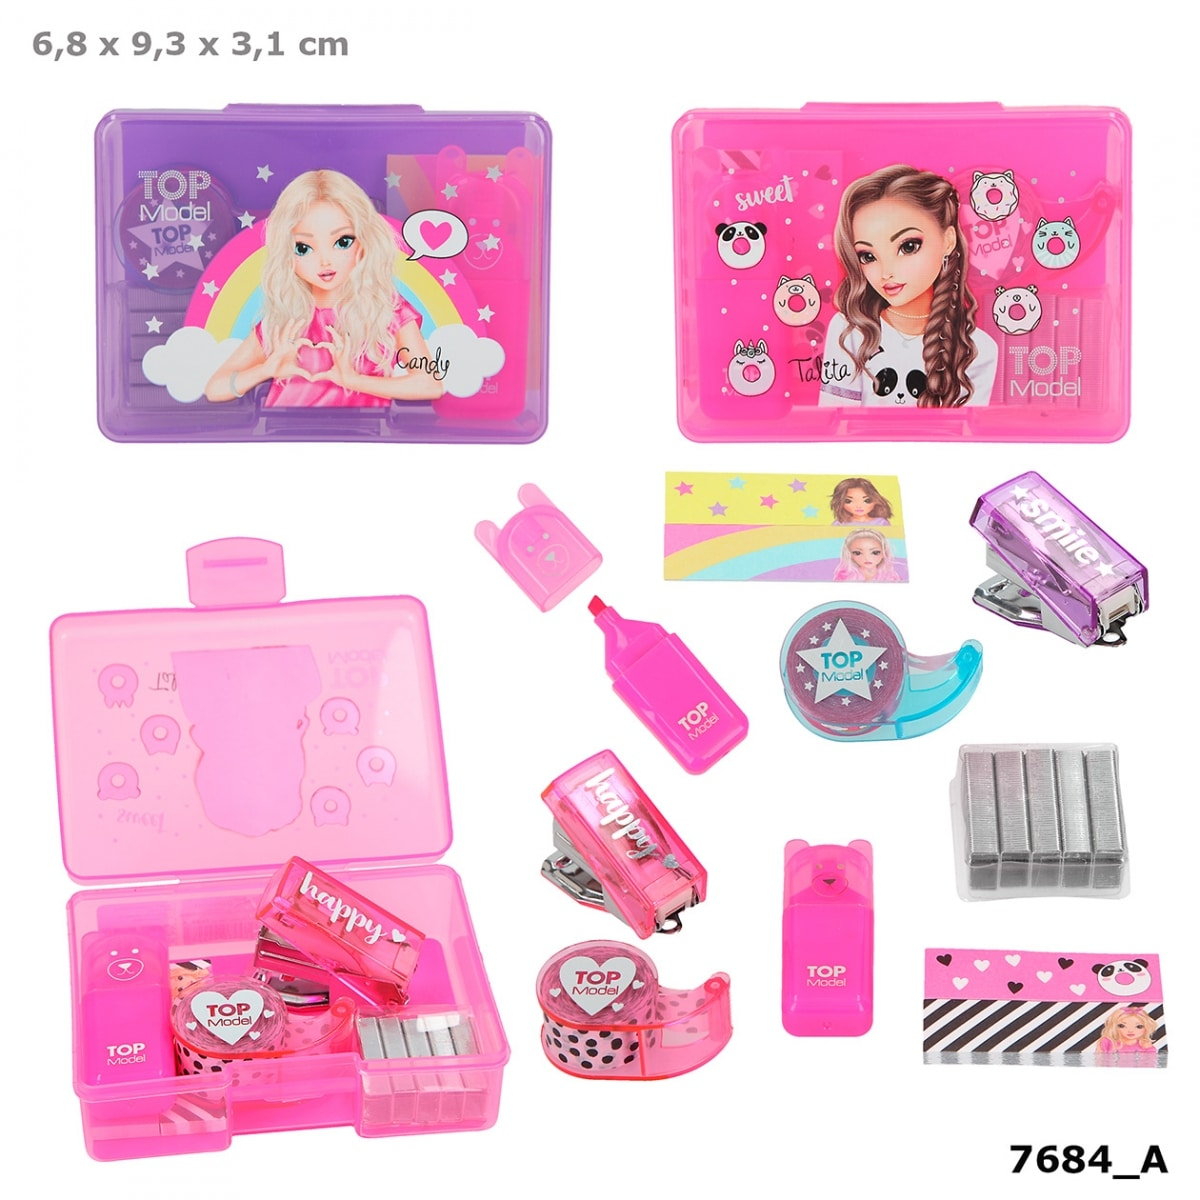 TOPModel Mini set de escritorio – Fucsia